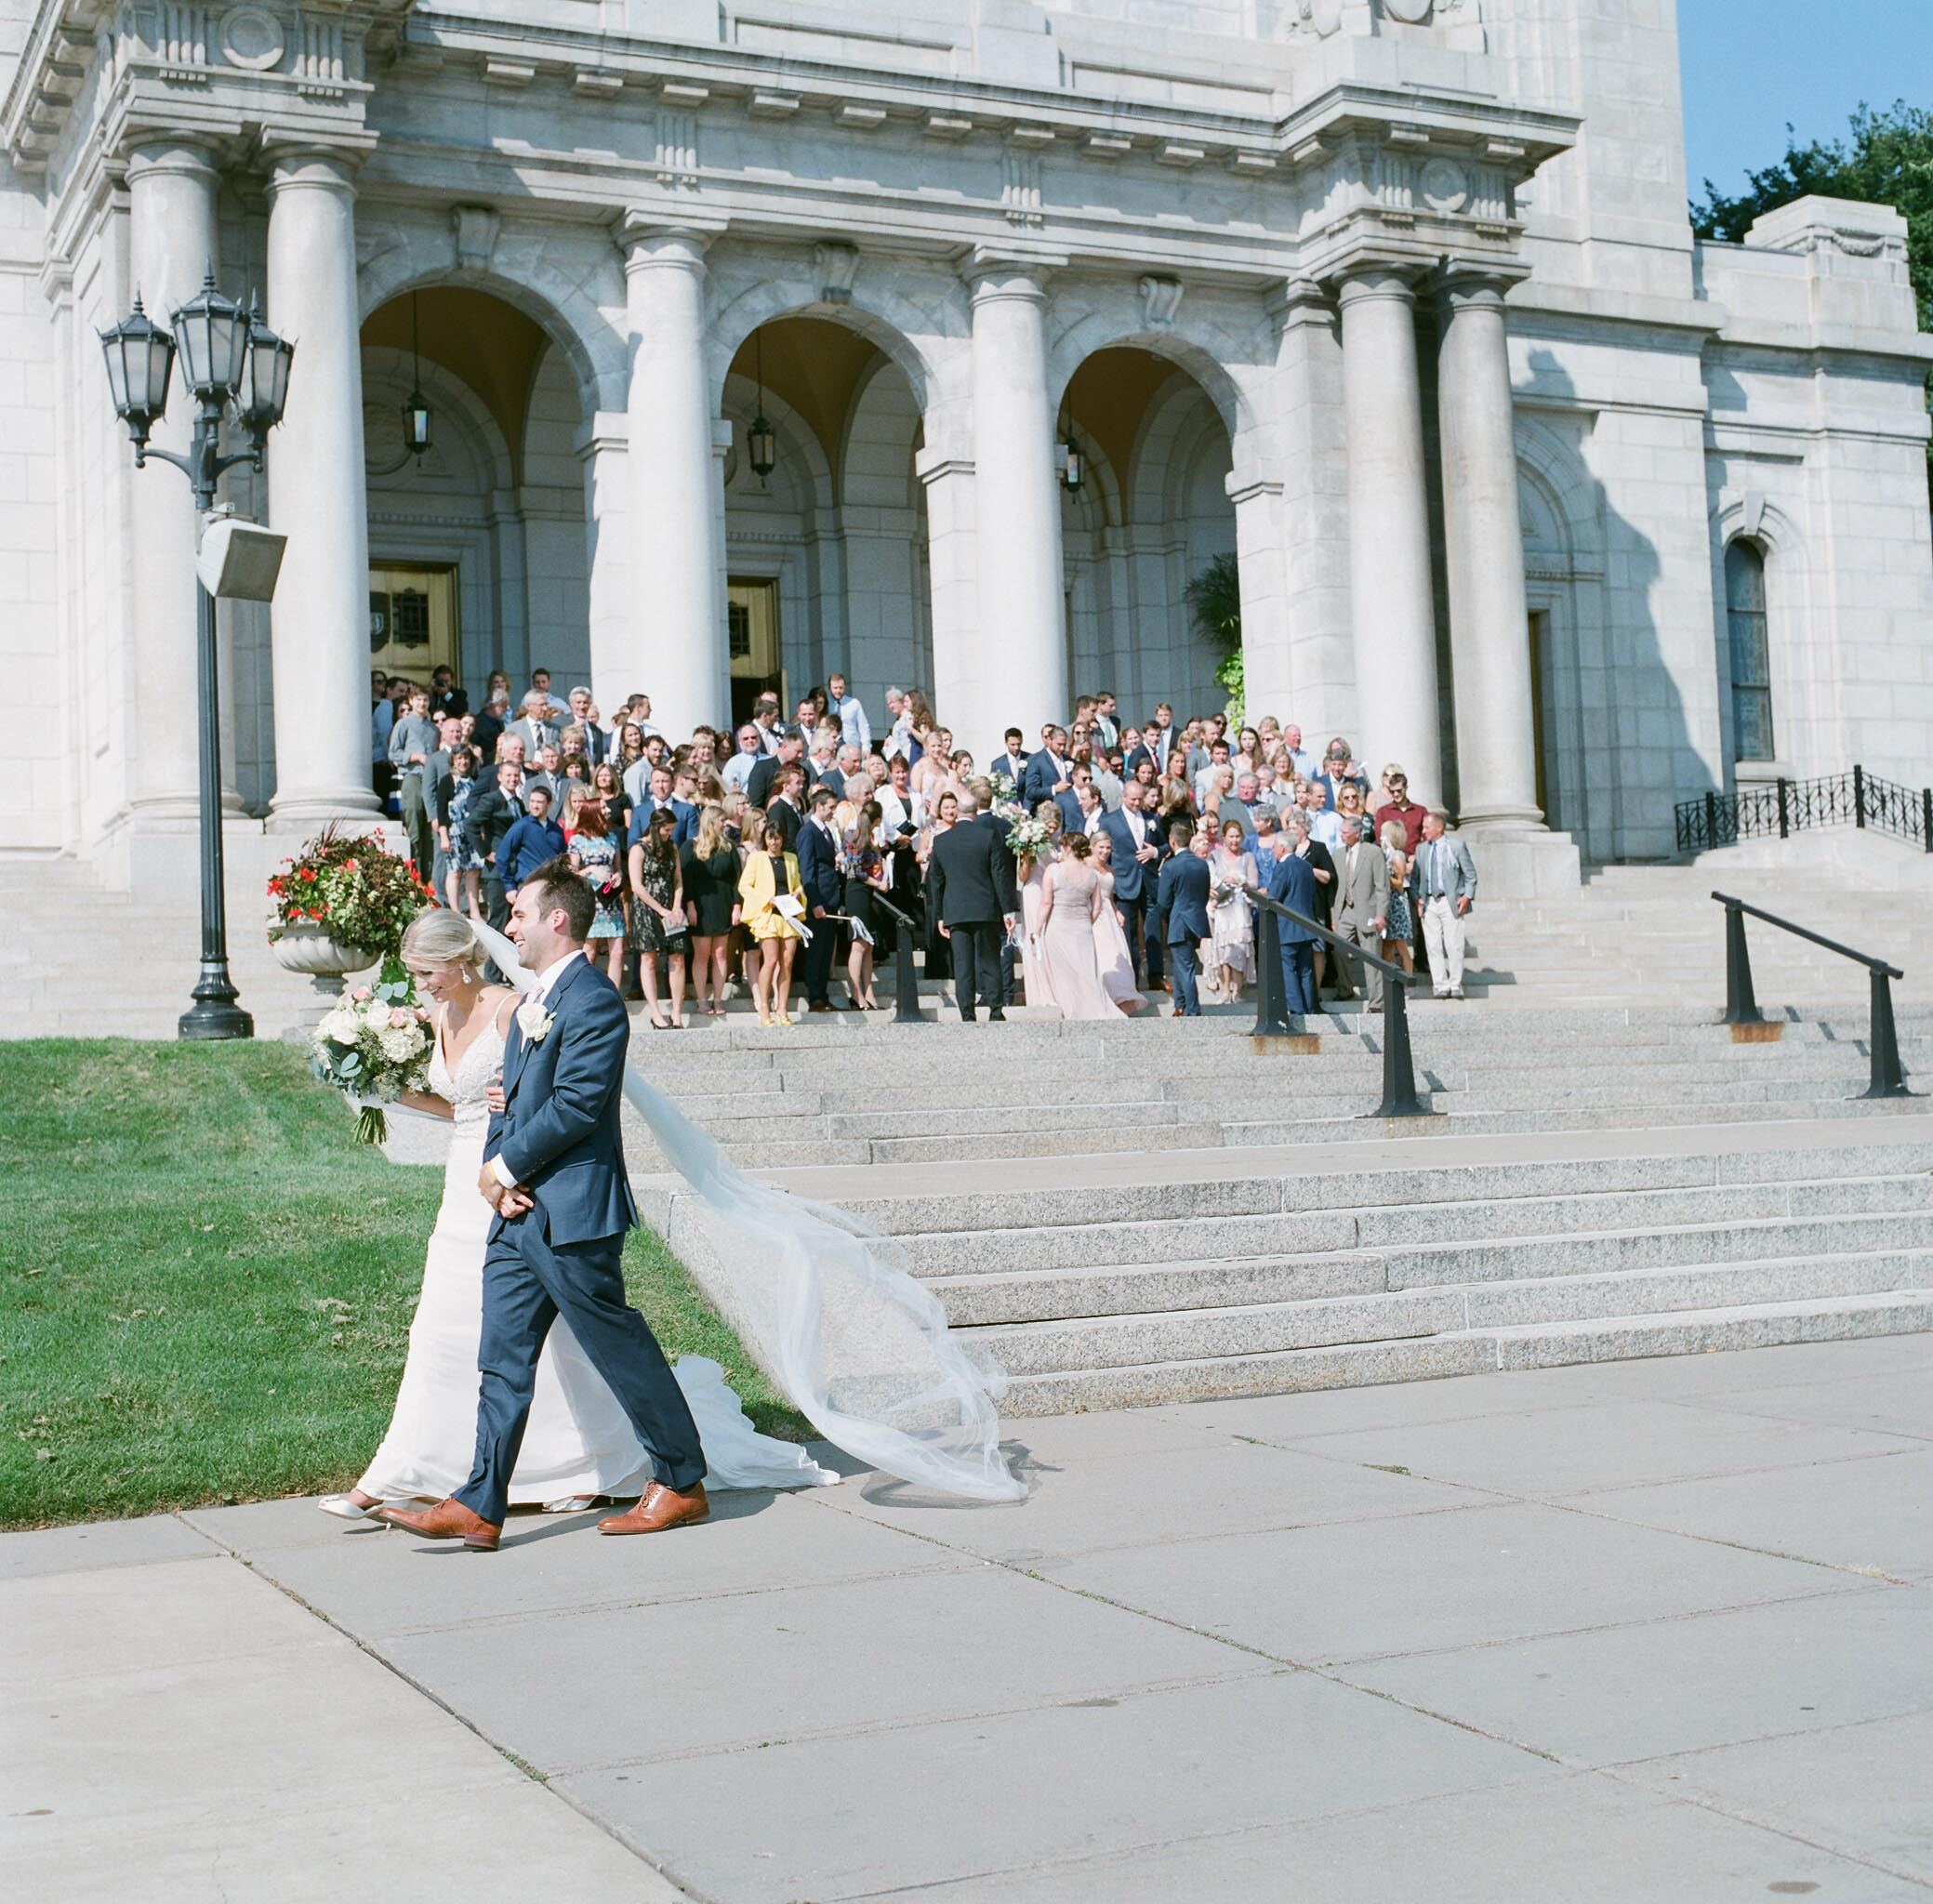 The basilica of saint mary wedding bride and groom exit